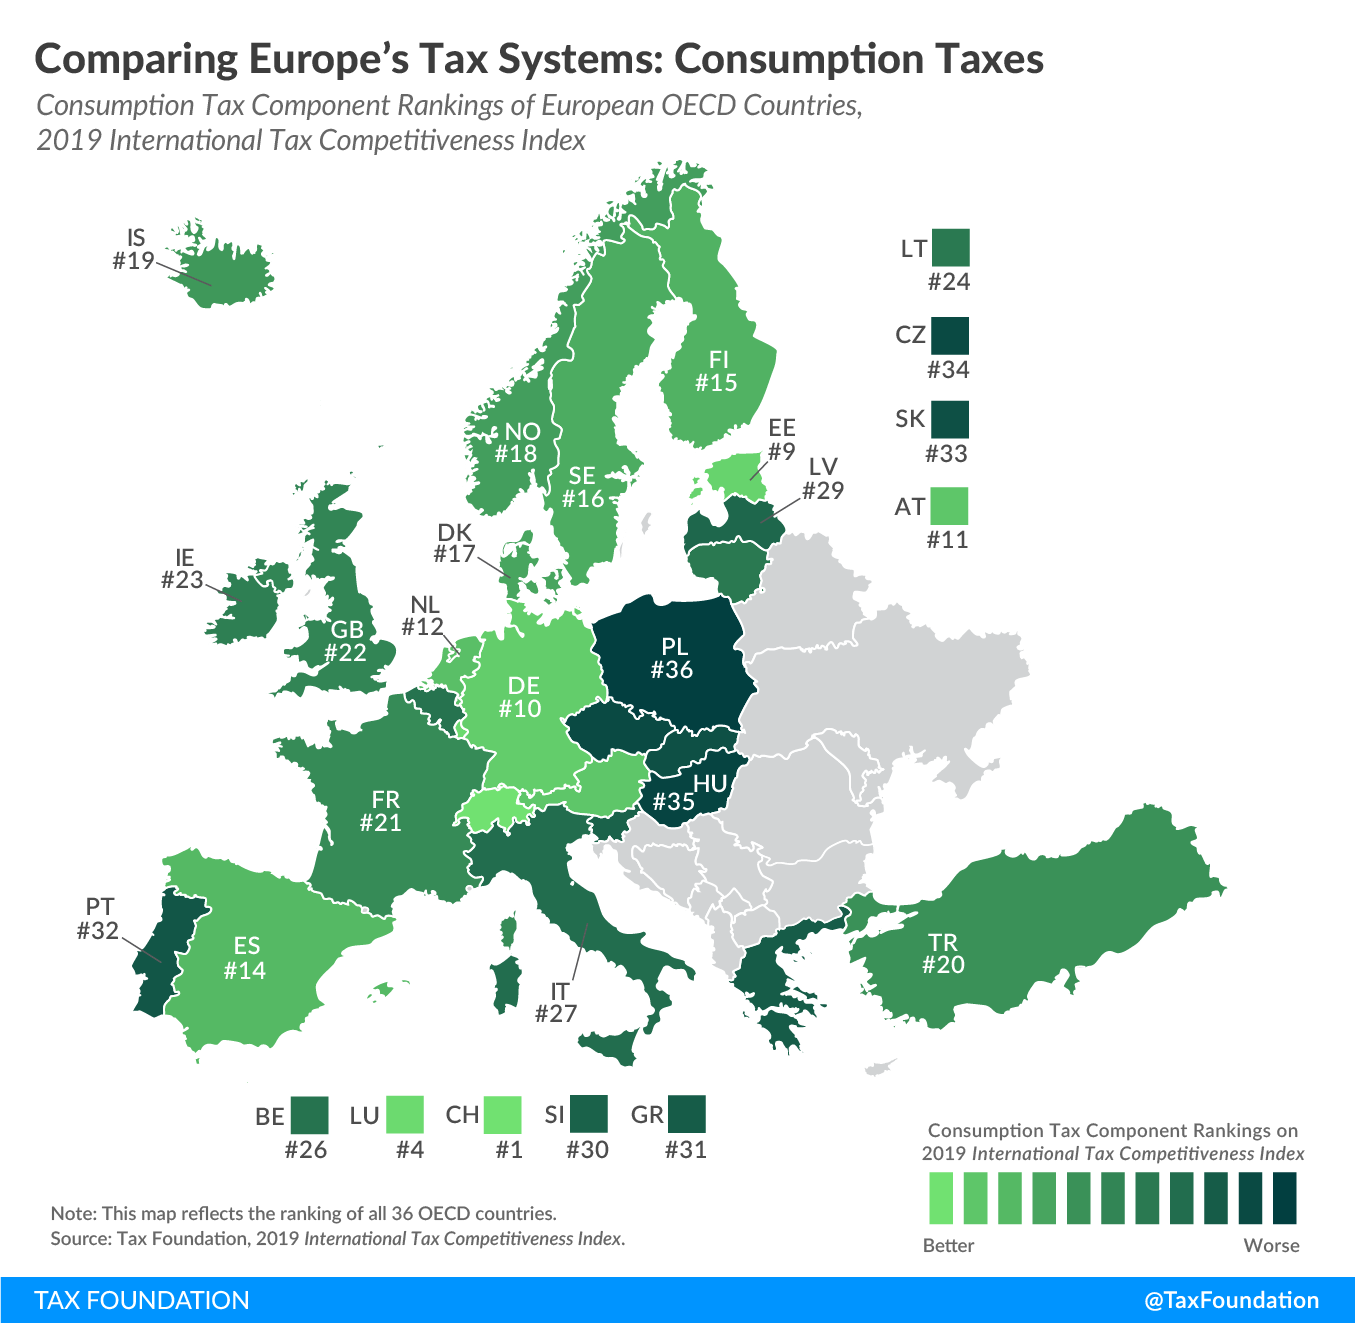 worst consumption tax system in the OECD, worst consumption tax system in Europe, best consumption tax system in Europe, best consumption tax system in the oecd